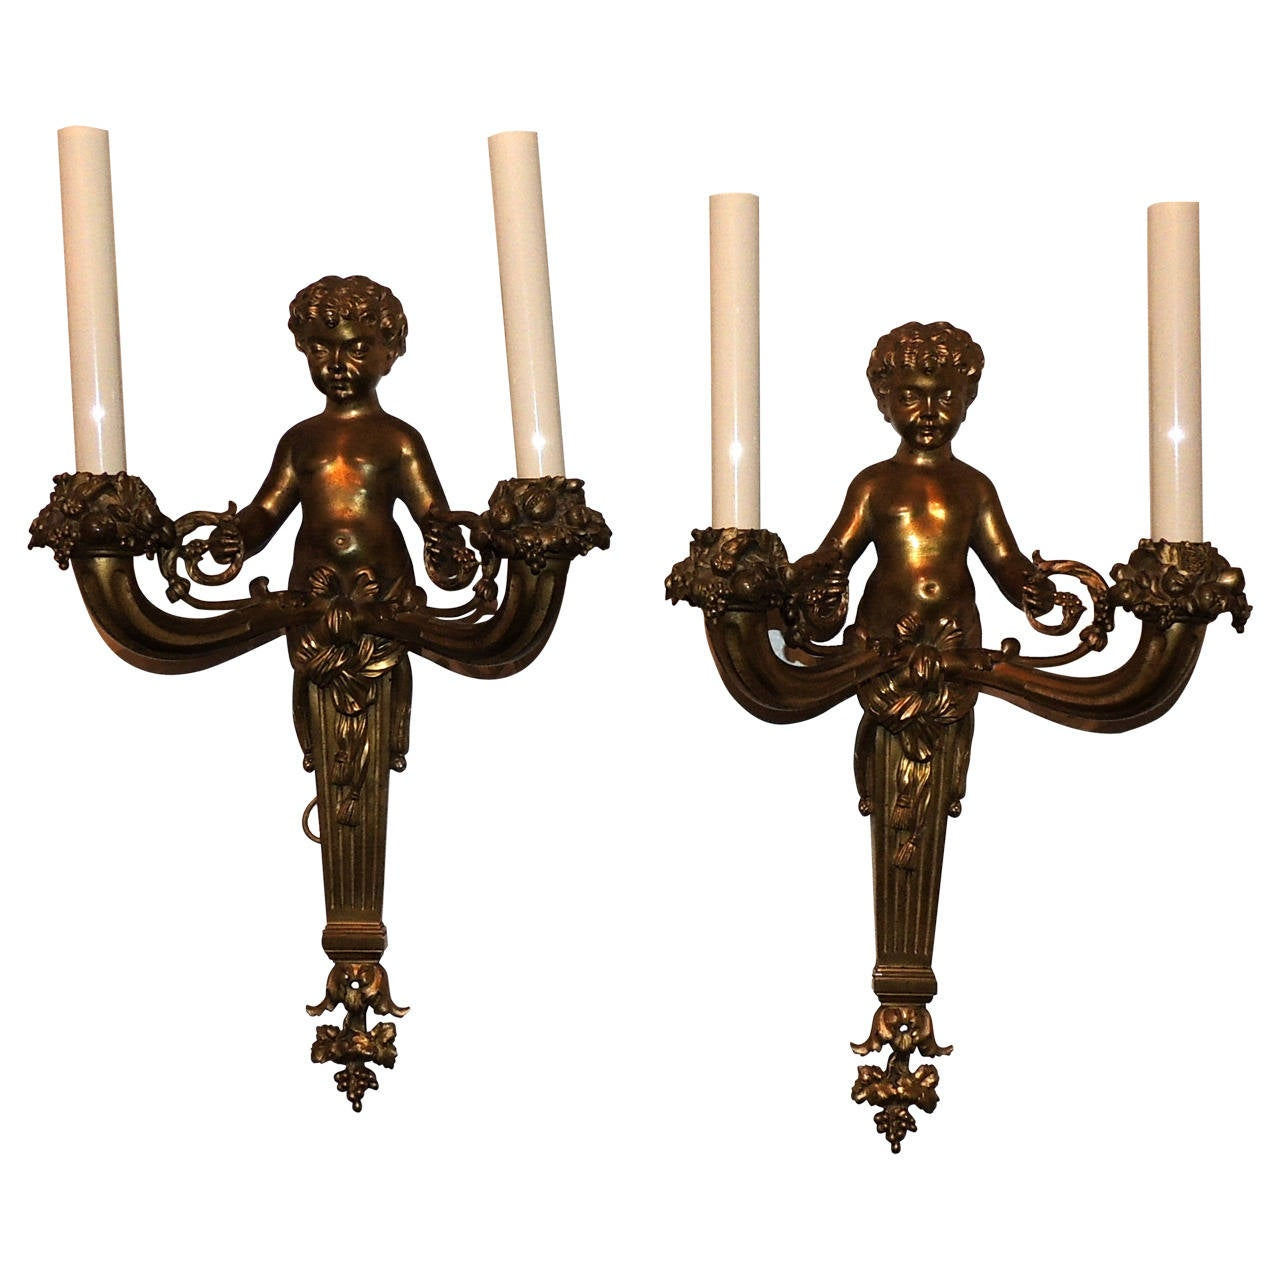 Wonderful Pair of French Doré Bronze Cherub Putti Figural Two-Arm Sconces